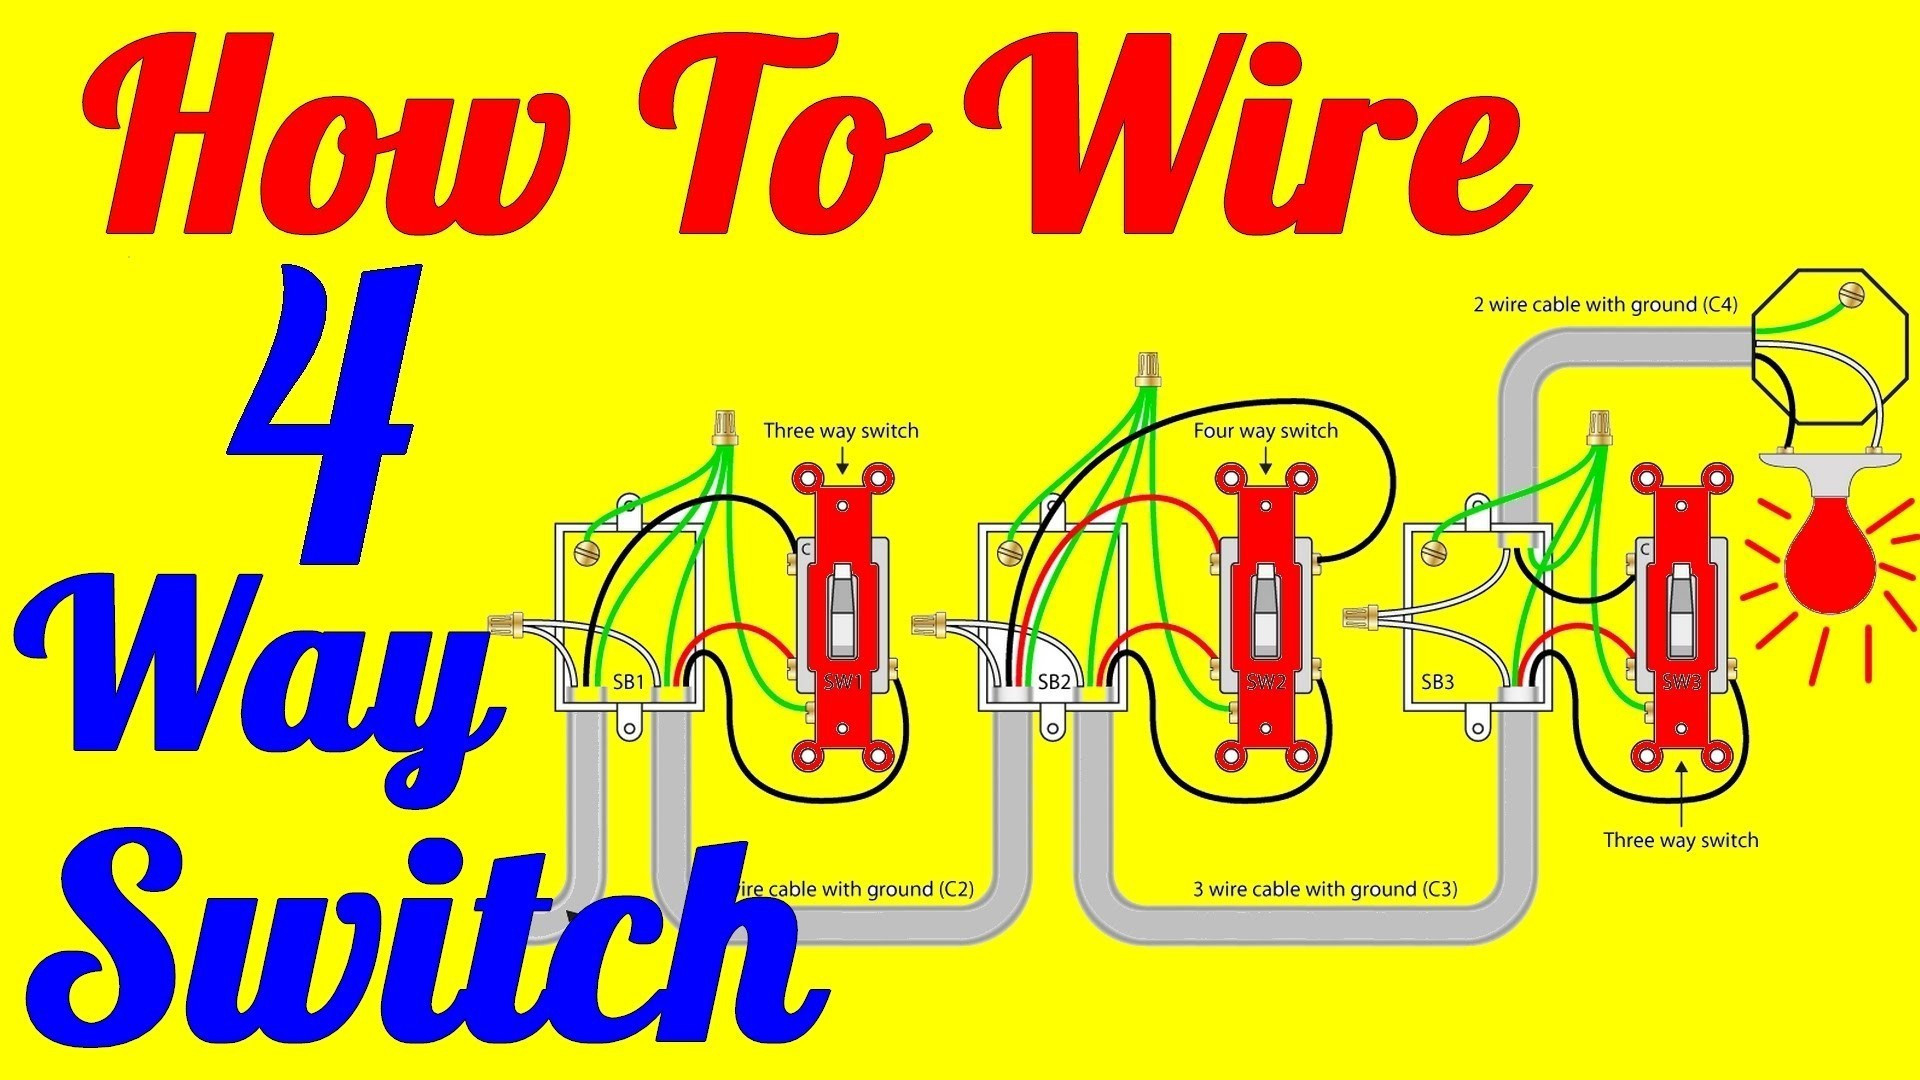 Wiring Diagram For Four Way Switch Rate Inspirational 4 Way Switch - 4 Way Switch Wiring Diagram Pdf